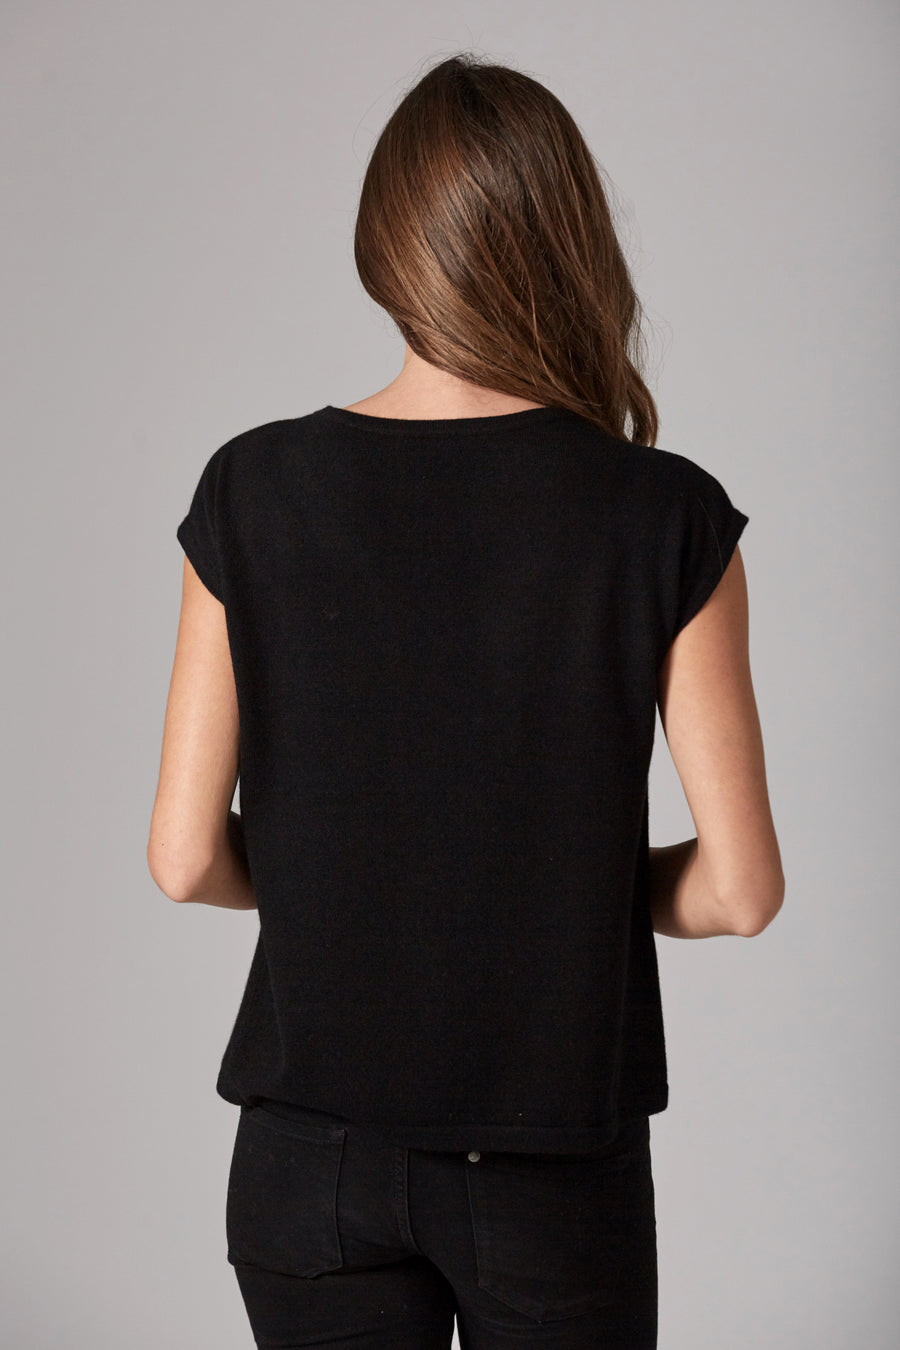 pine cashmere hailey sleeveless women's 100% pure cashmere crewneck top in black